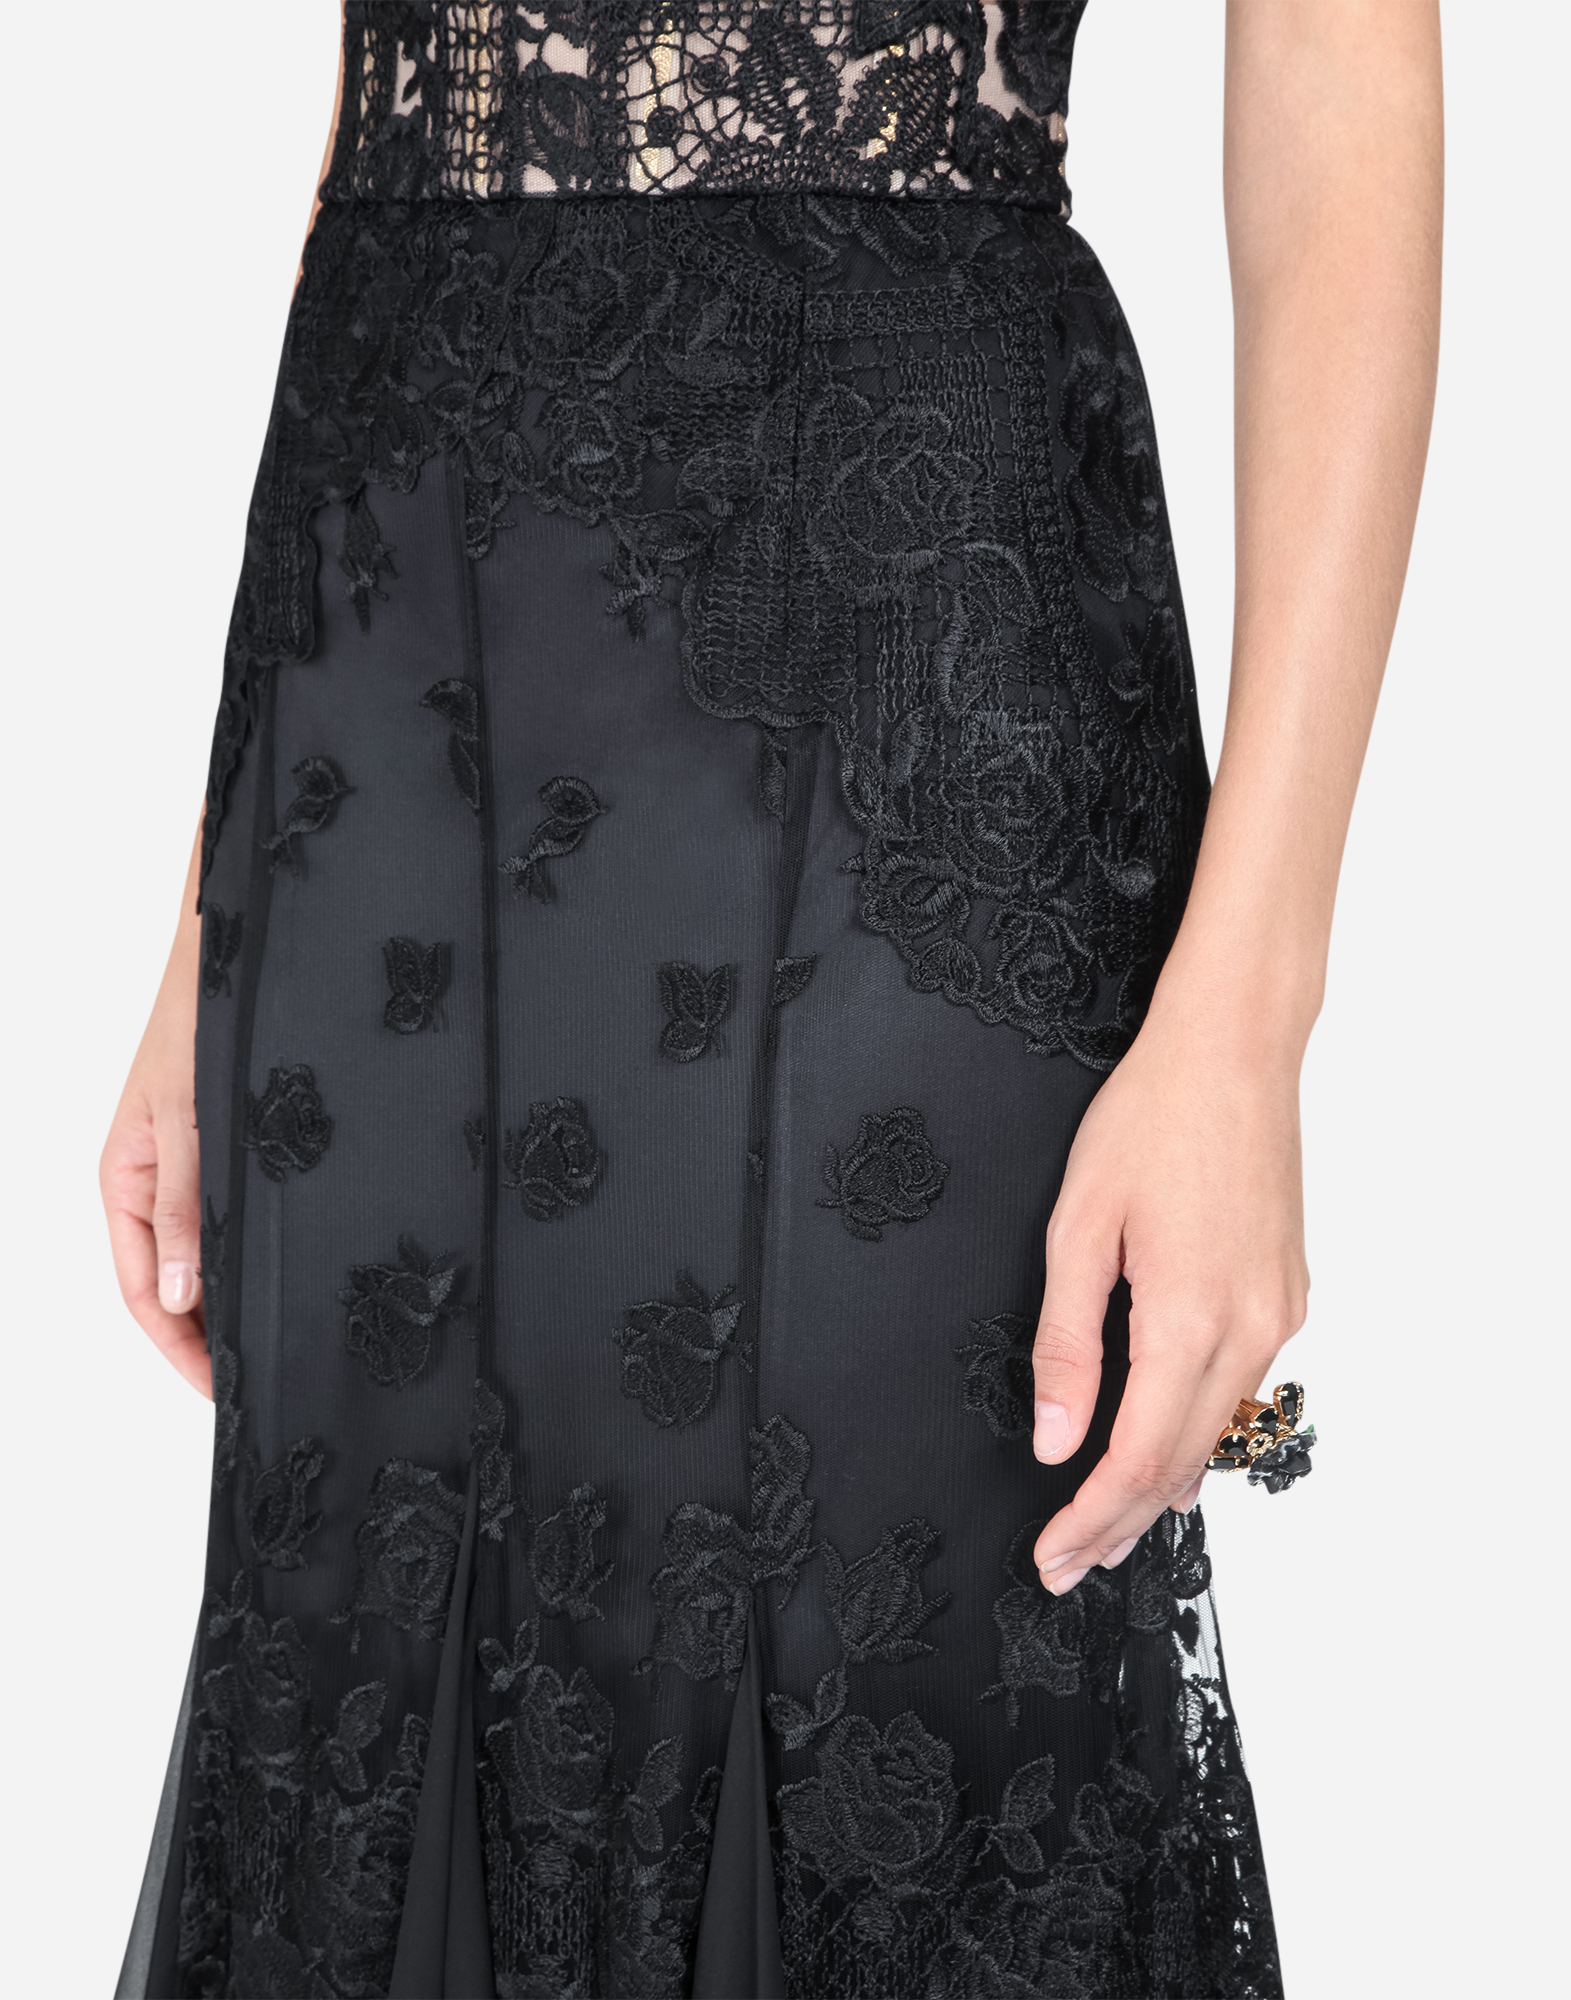 Dolce & Gabbana EMBROIDERED TULLE DRESS